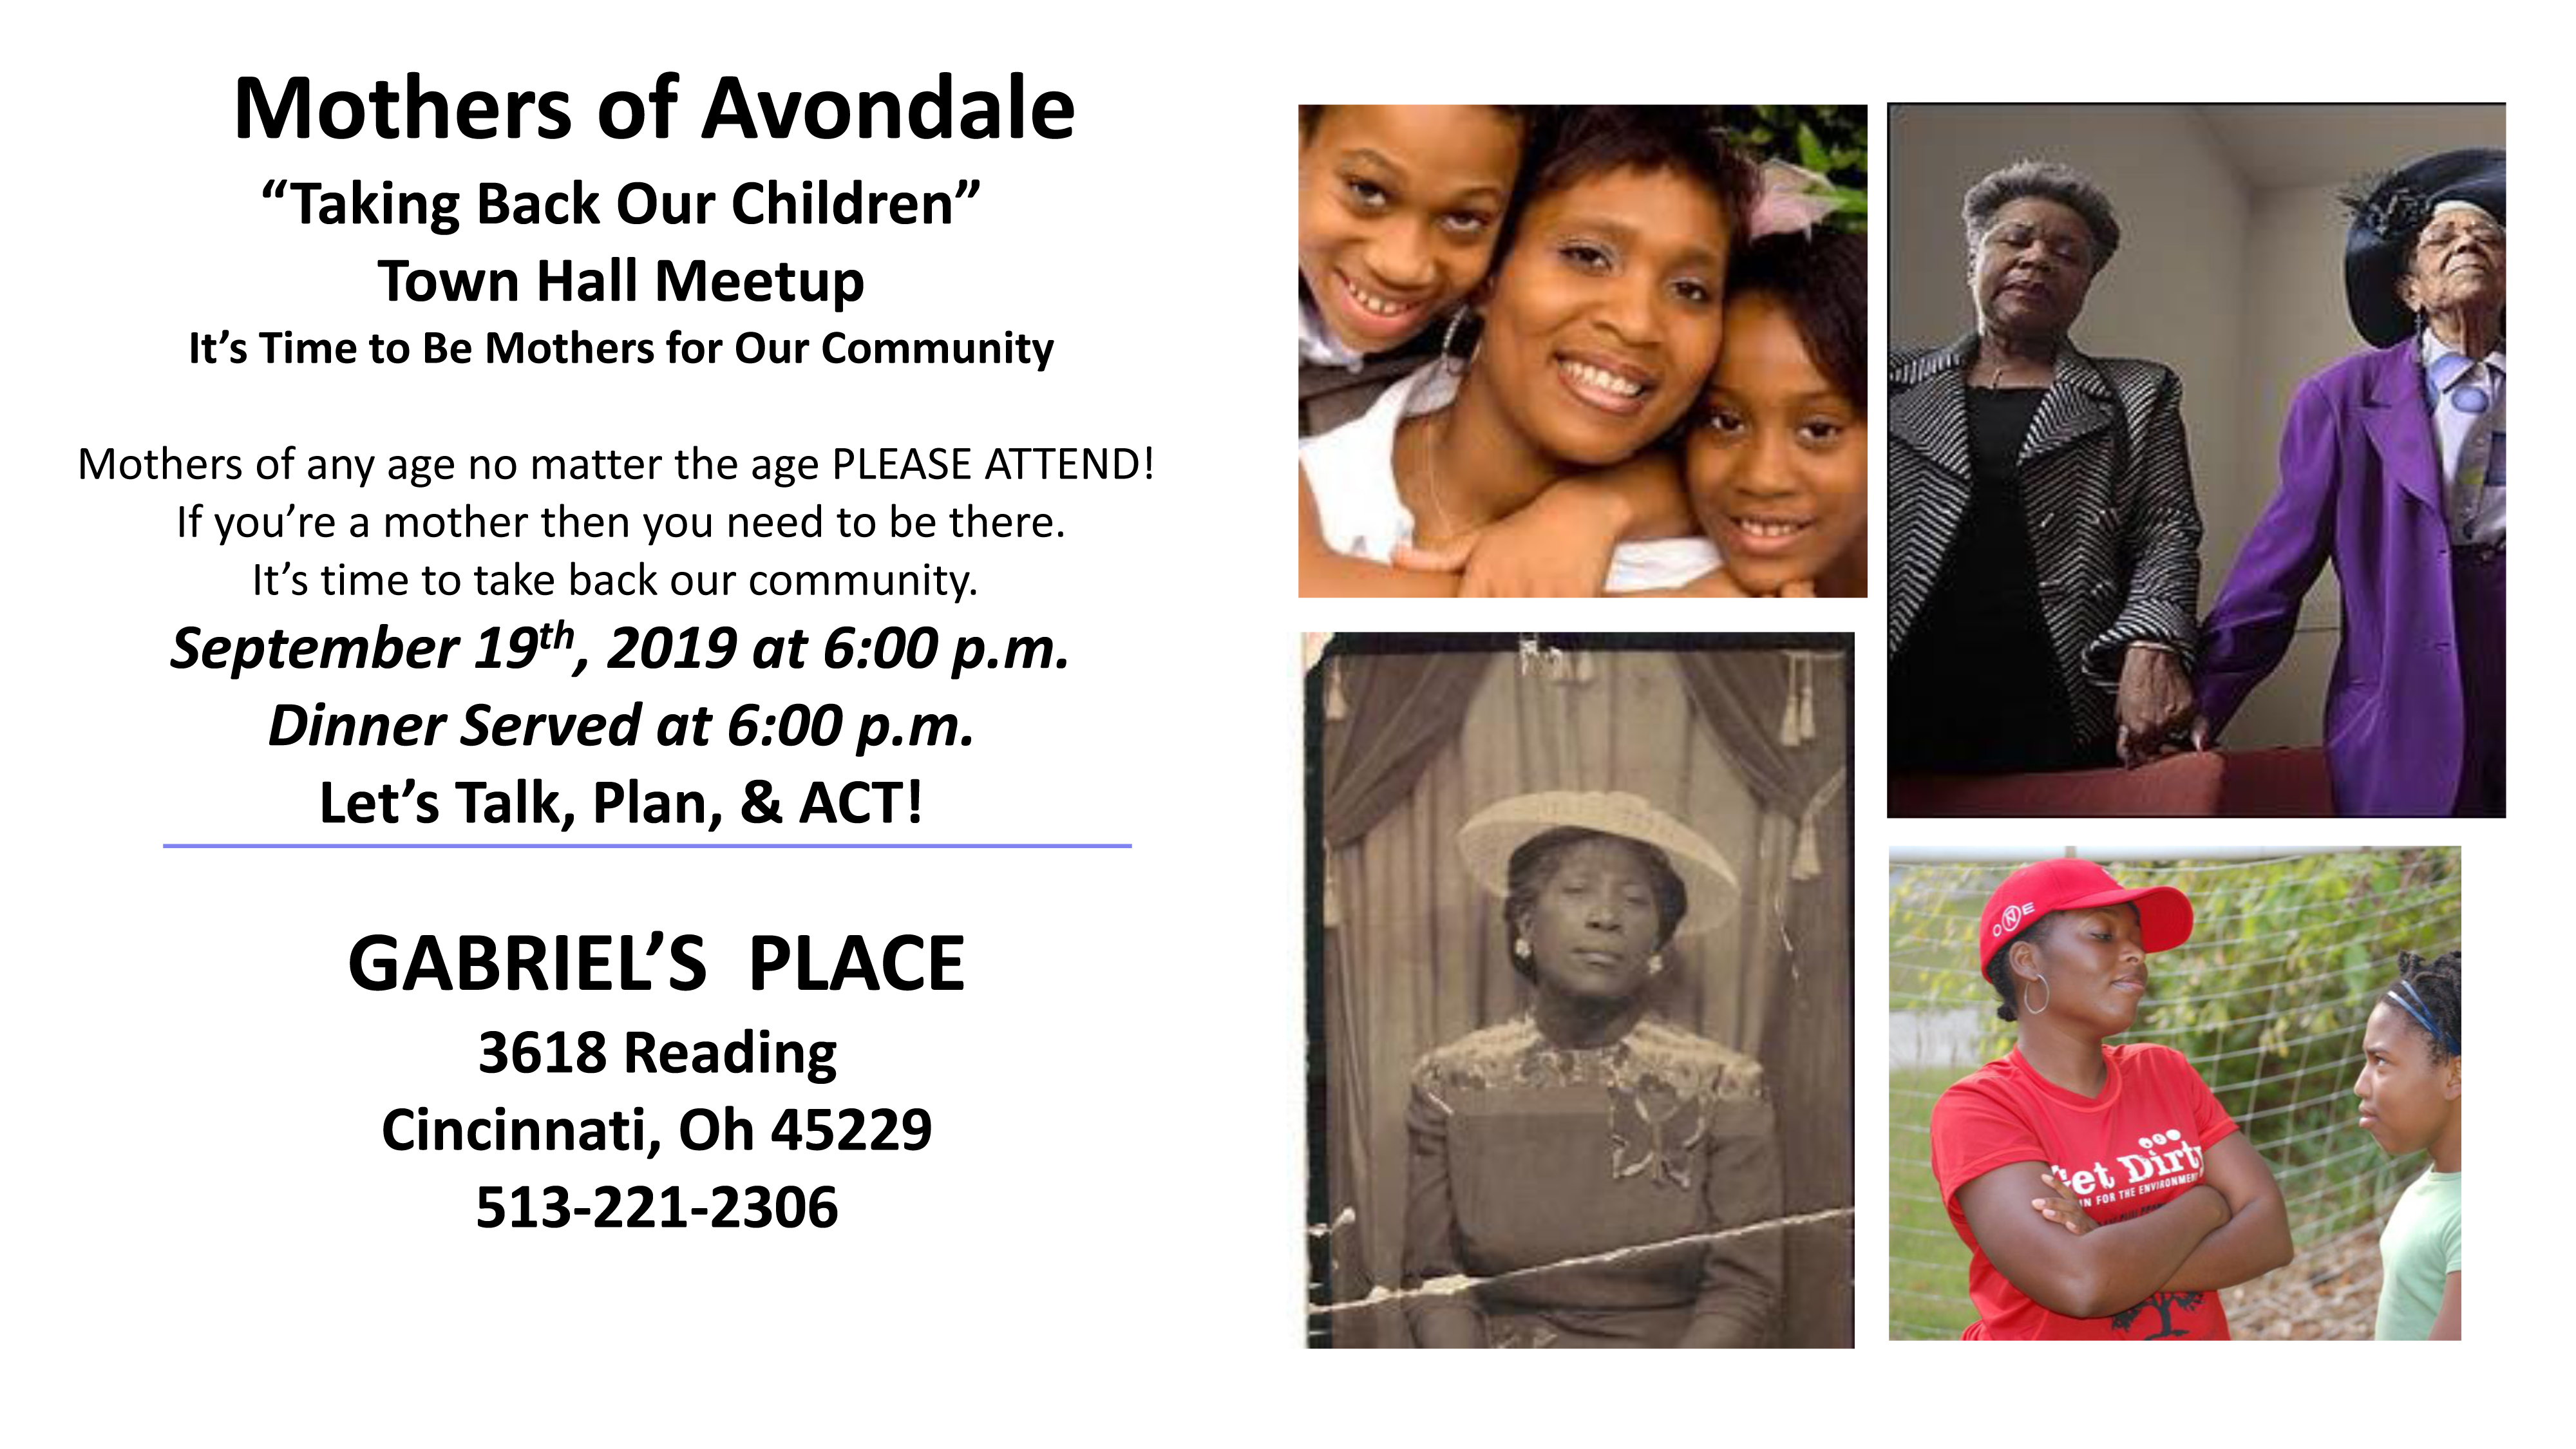 Mothers of Avondale